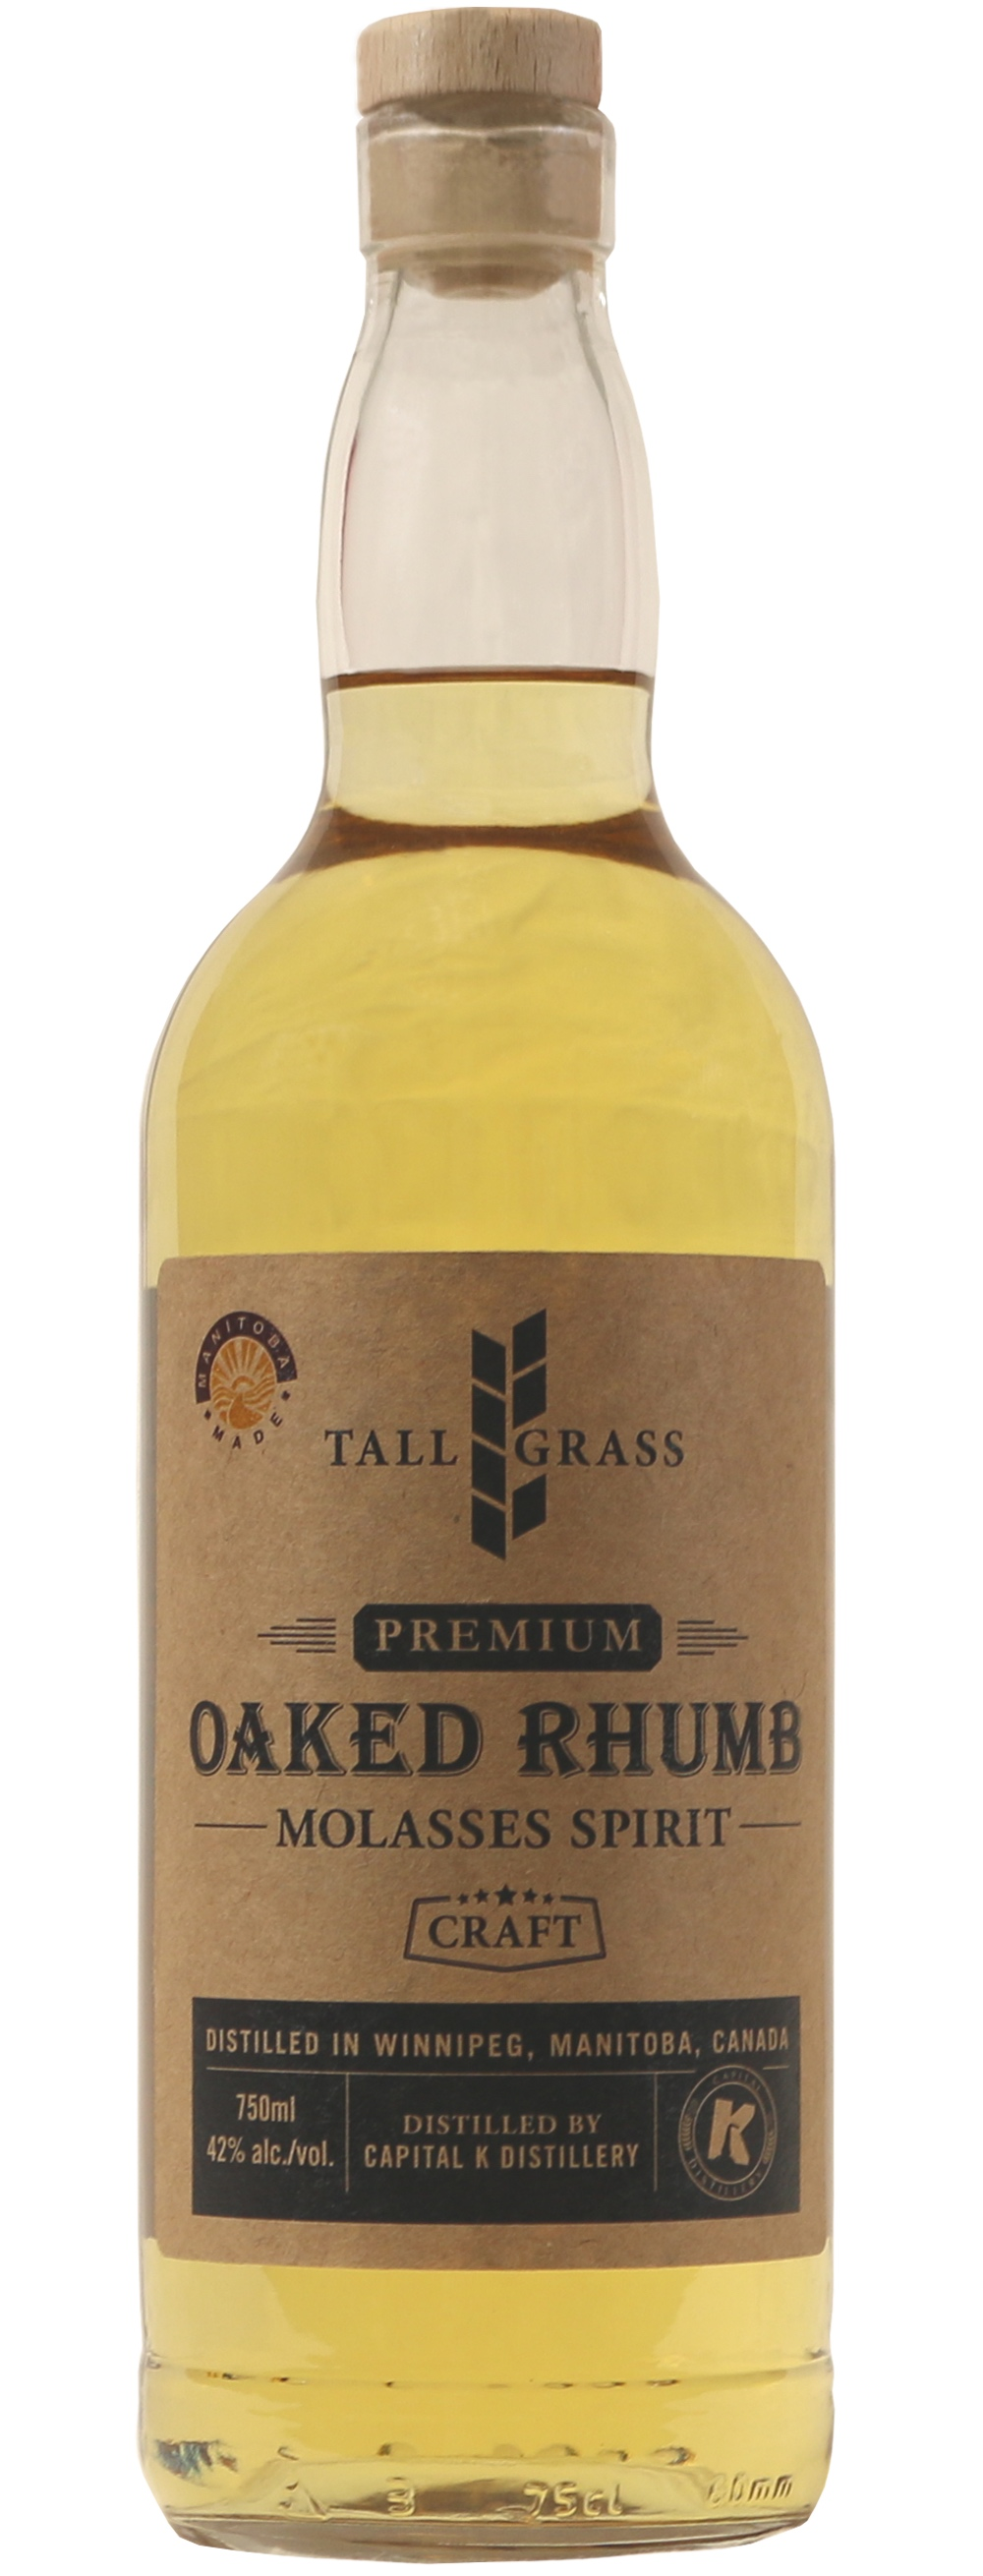 Tall+Grass+Oaked+Rhumb.jpg